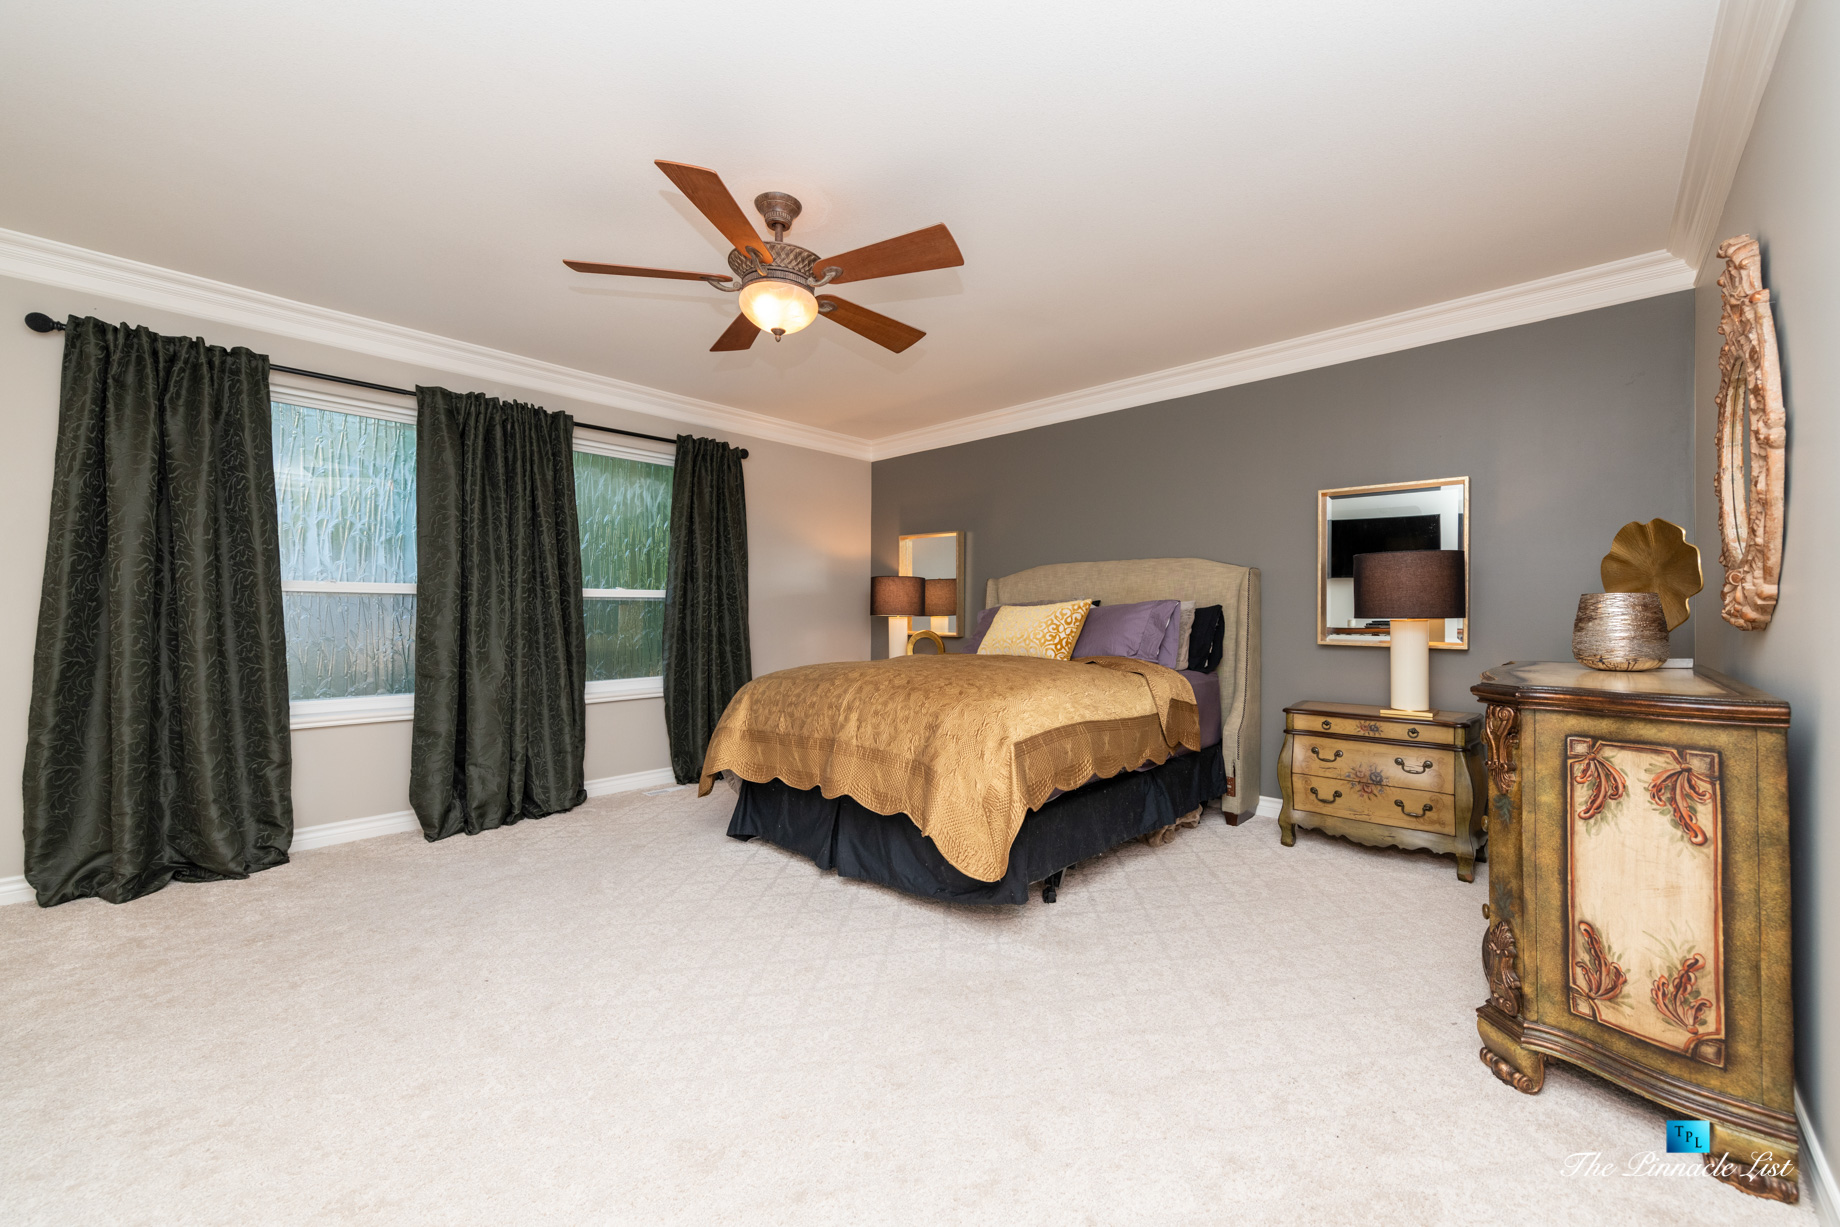 2366 Sunnyside Rd, Anmore, BC, Canada – Master Bedroom